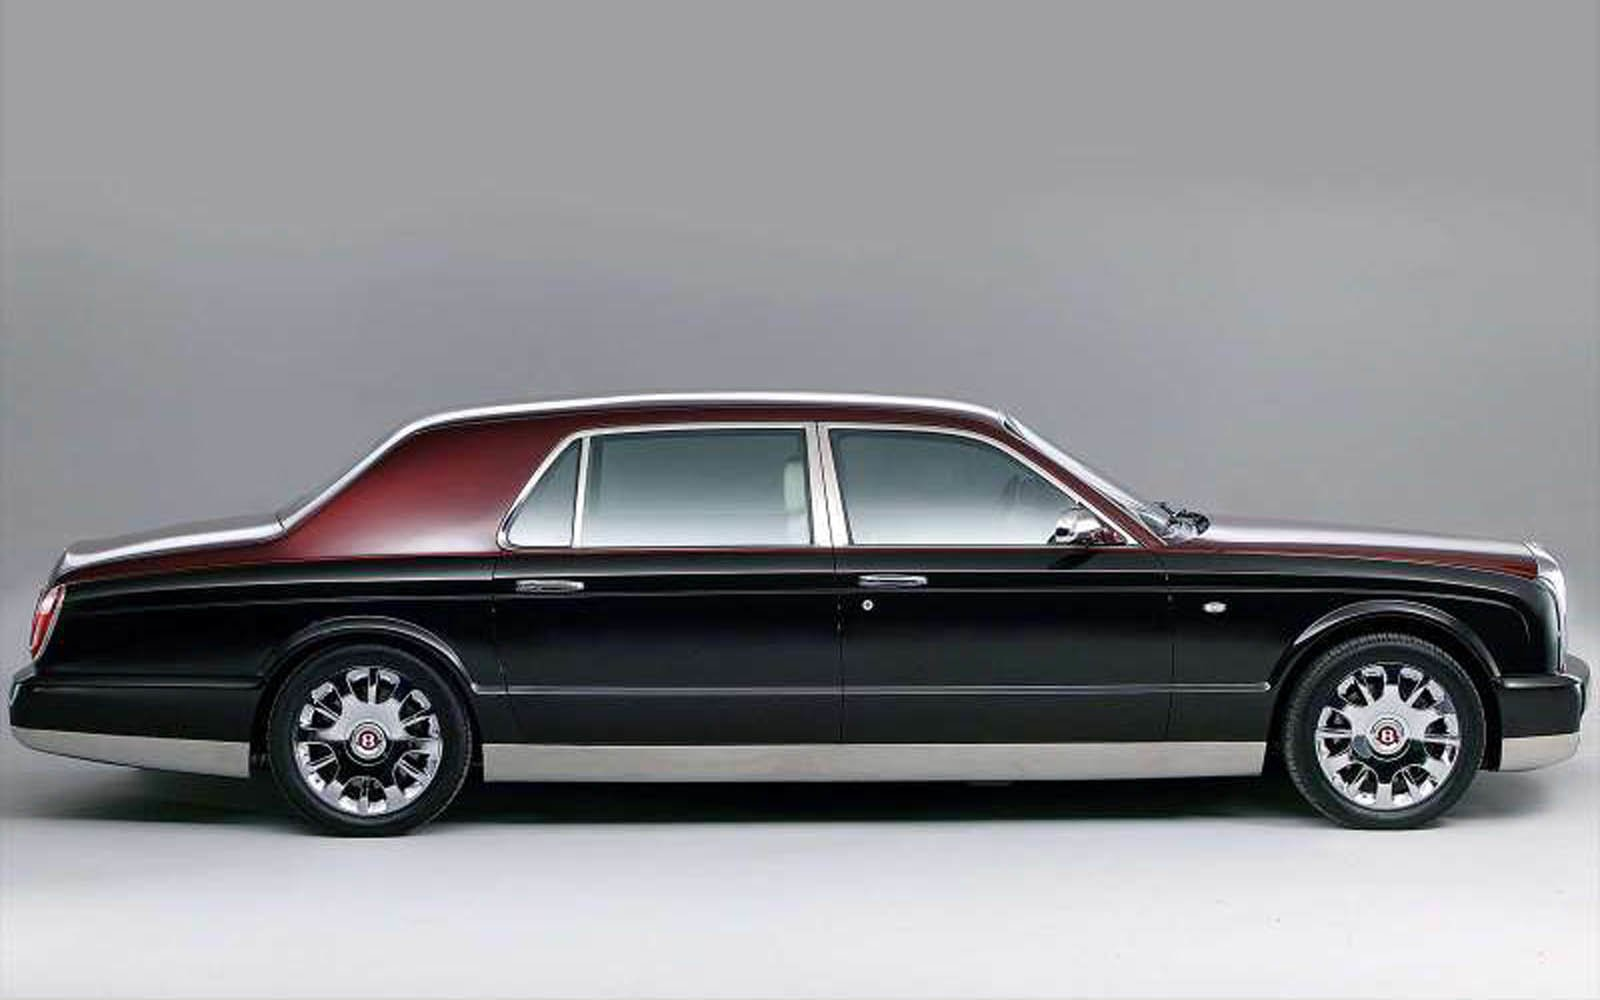 Latest Wallpaper Bentley Arnage Car Wallpapers Free Download